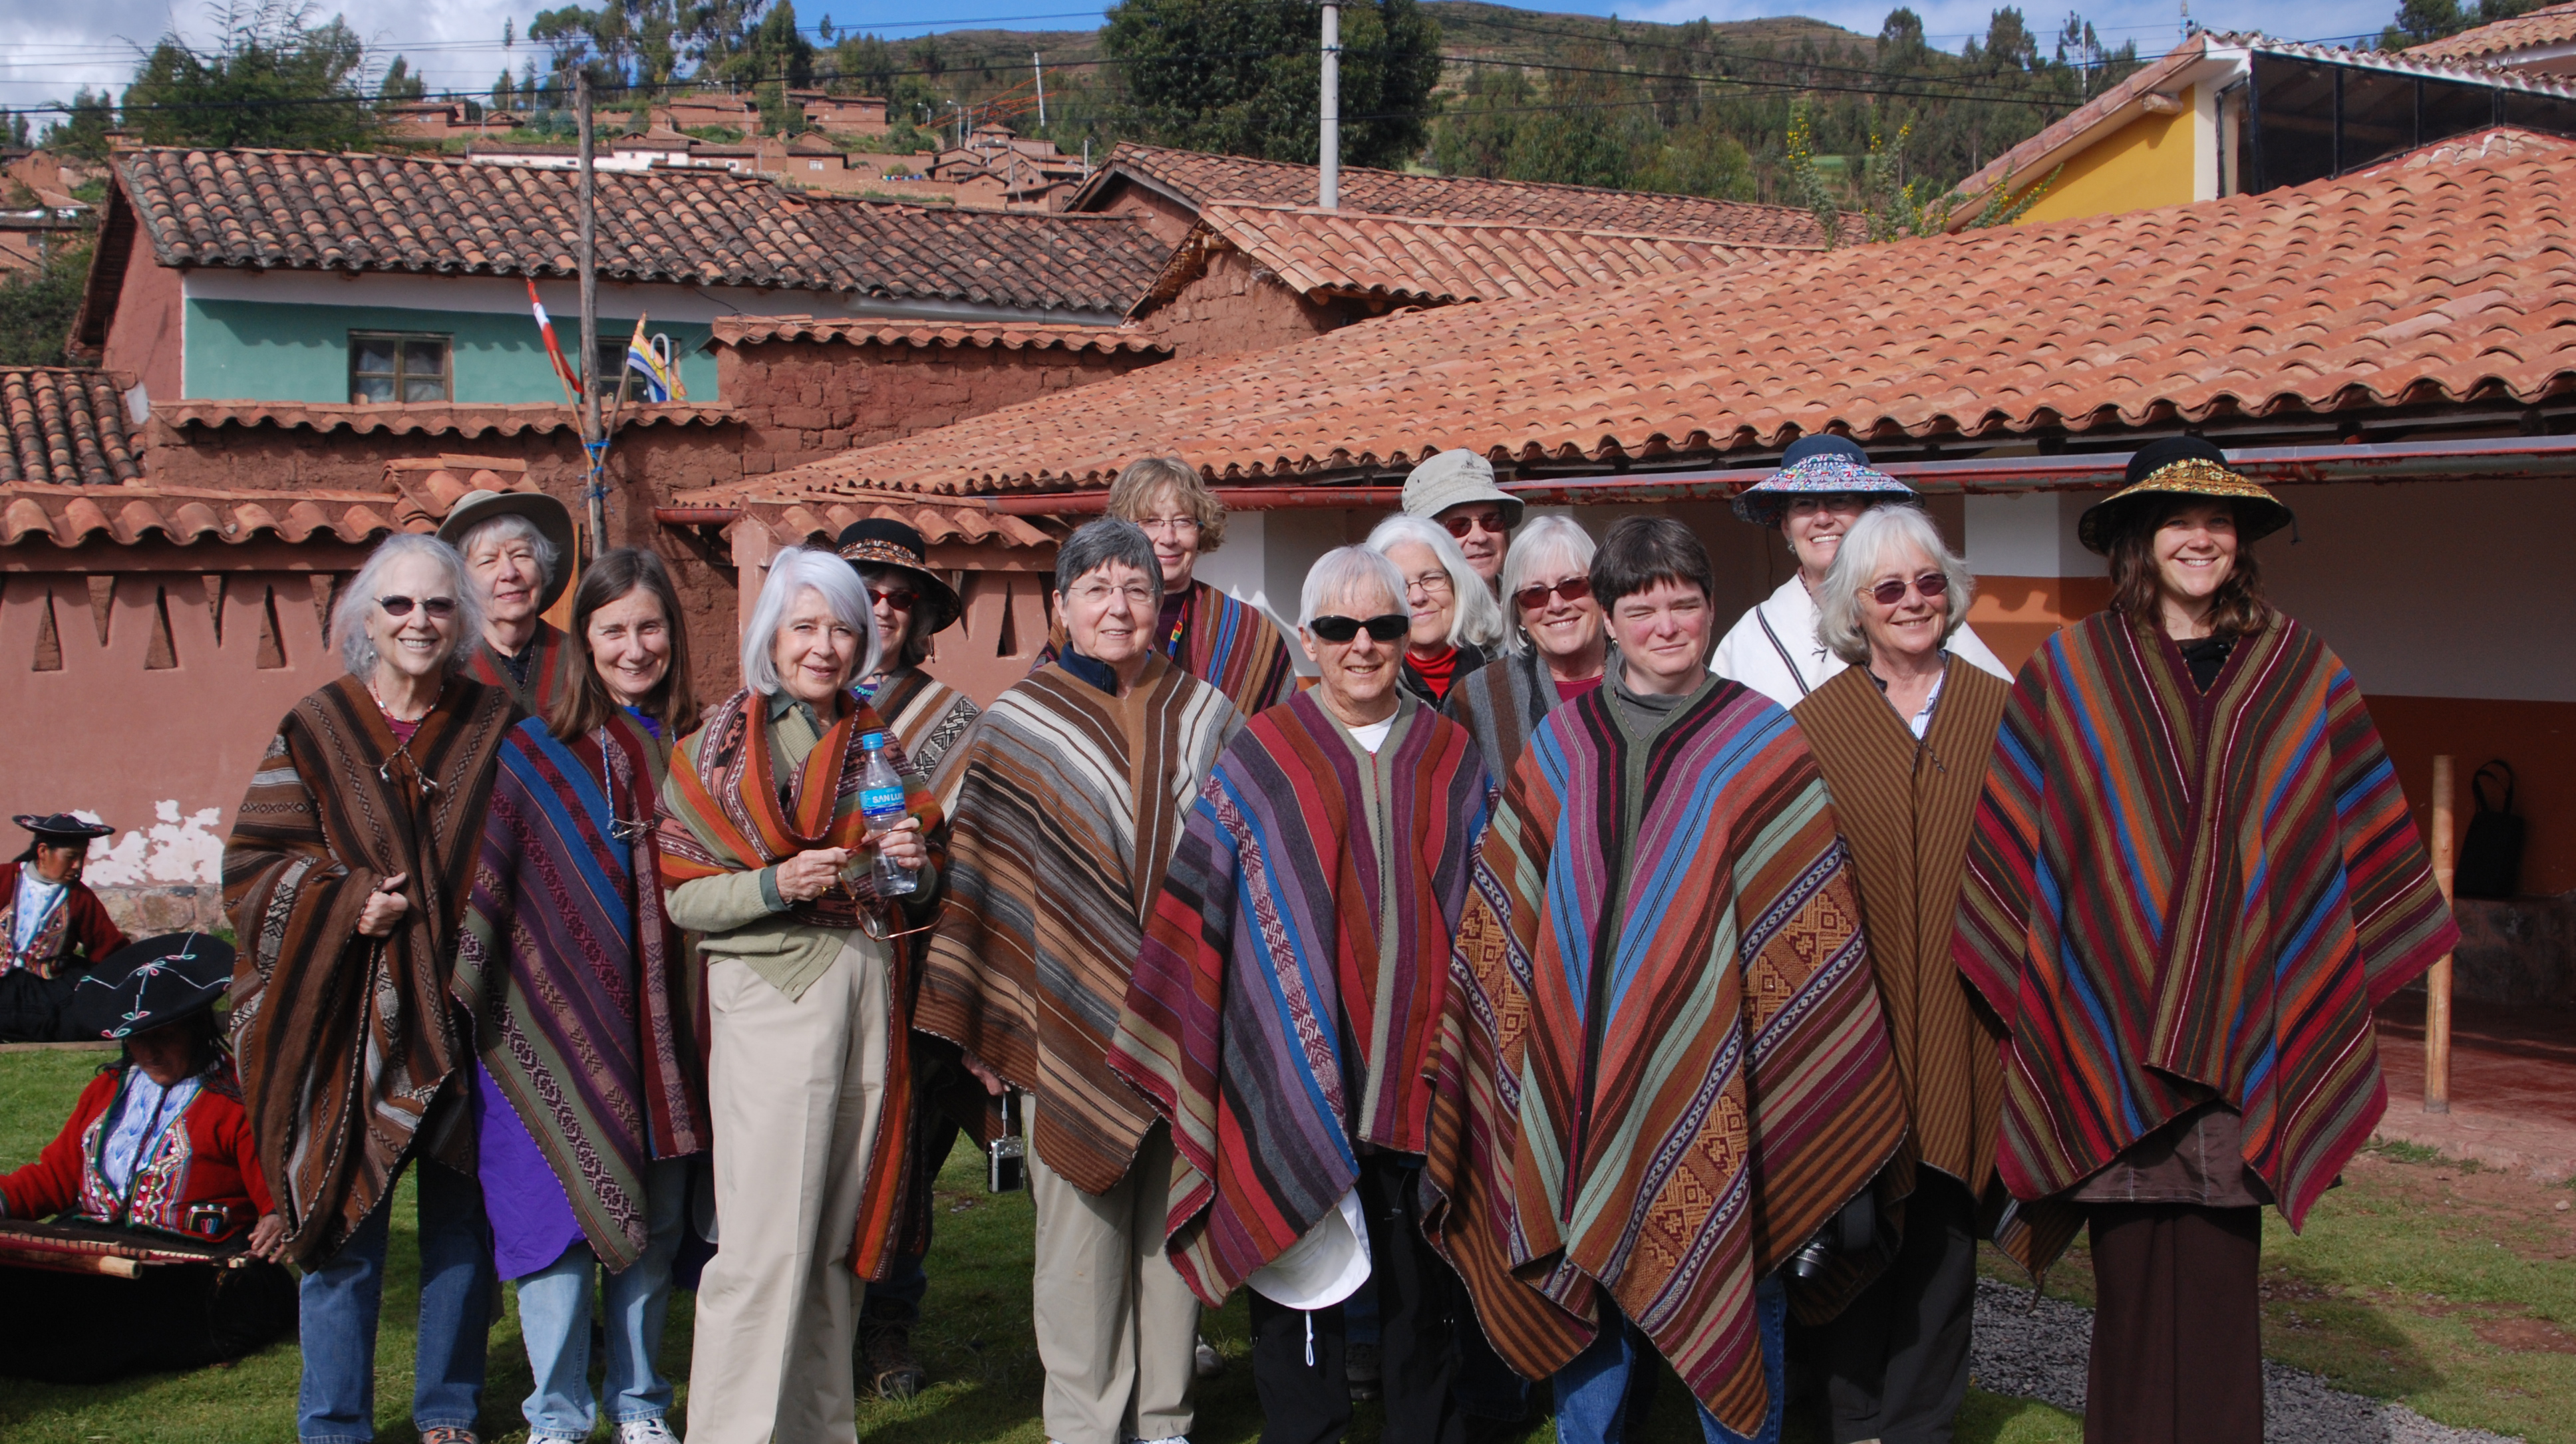 Visitors-with-ponchos